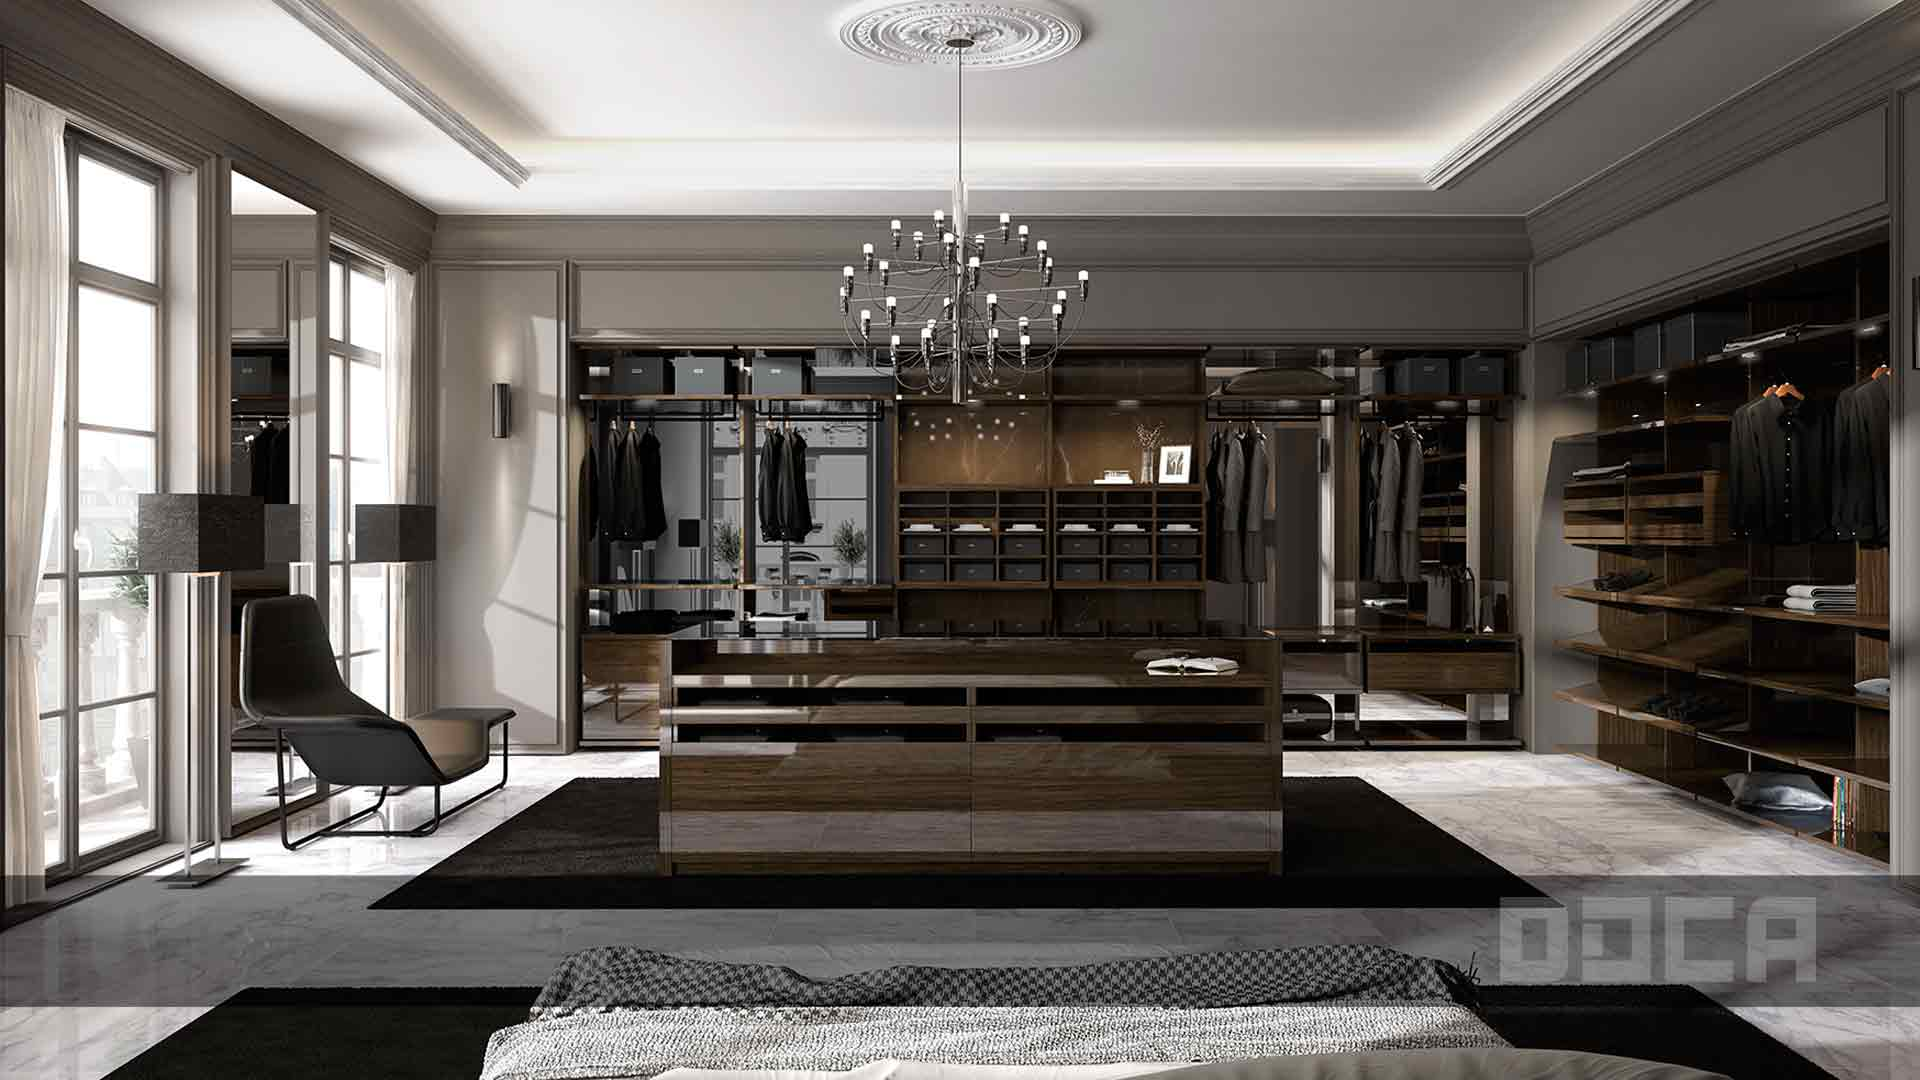 barna tint wieland k chen einrichtung. Black Bedroom Furniture Sets. Home Design Ideas